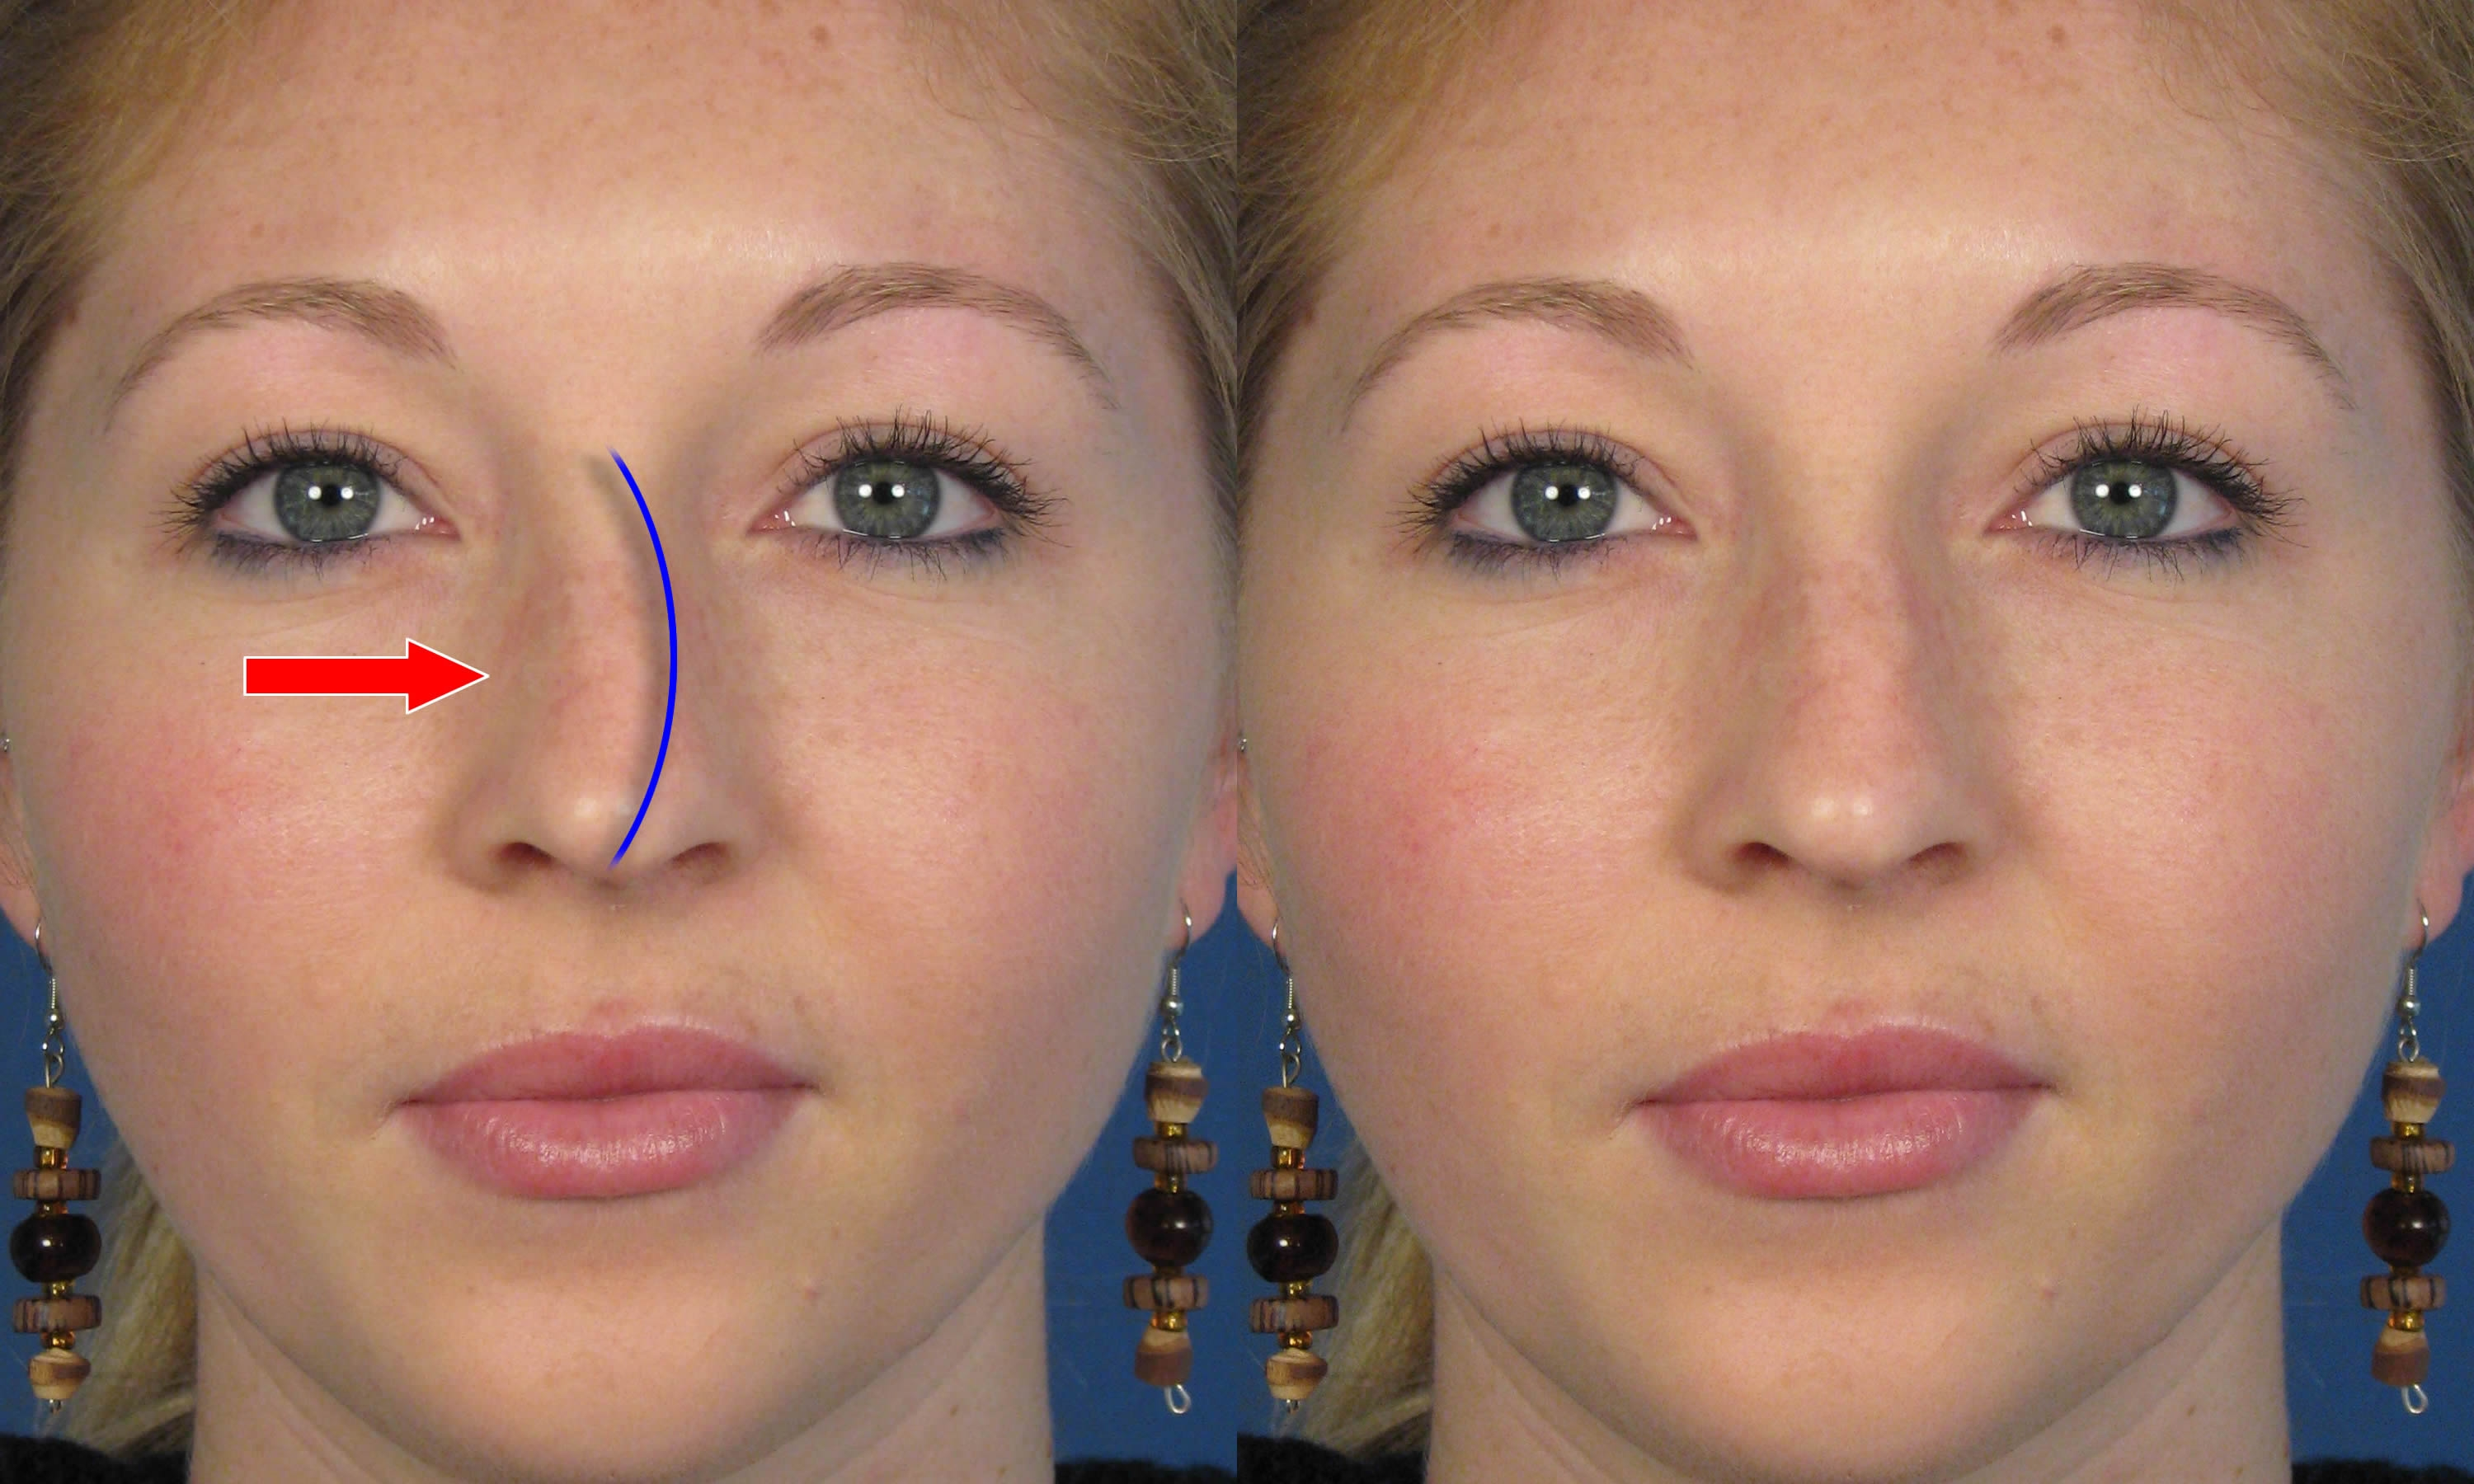 Very Crooked Nose After Septo-rhinoplasty? (photo) Doctor ...